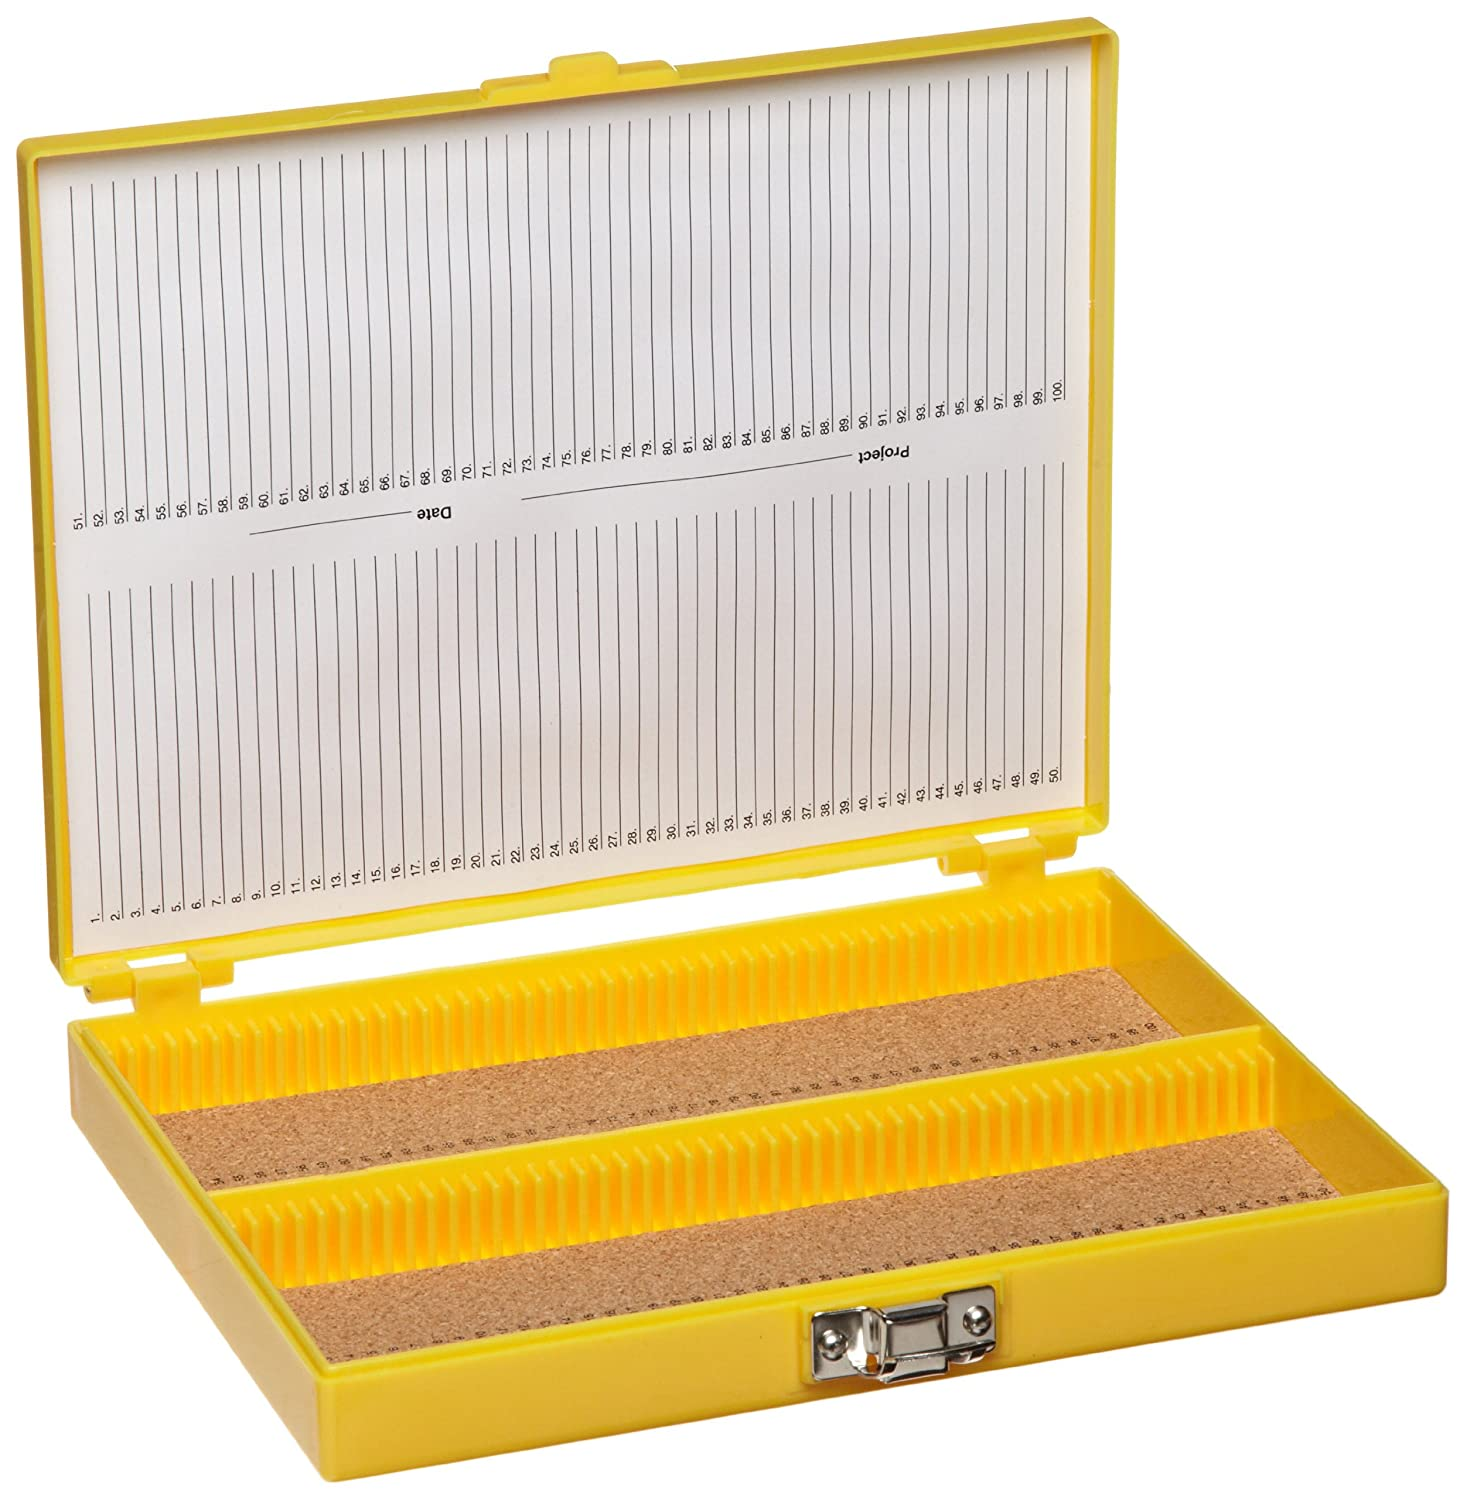 Heathrow Scientific HD15994D Microscope Slide Box, Cork Lined, 100 Place, 208 mm Length x 175 mm Width x 34 mm Height, Yellow HS15994D